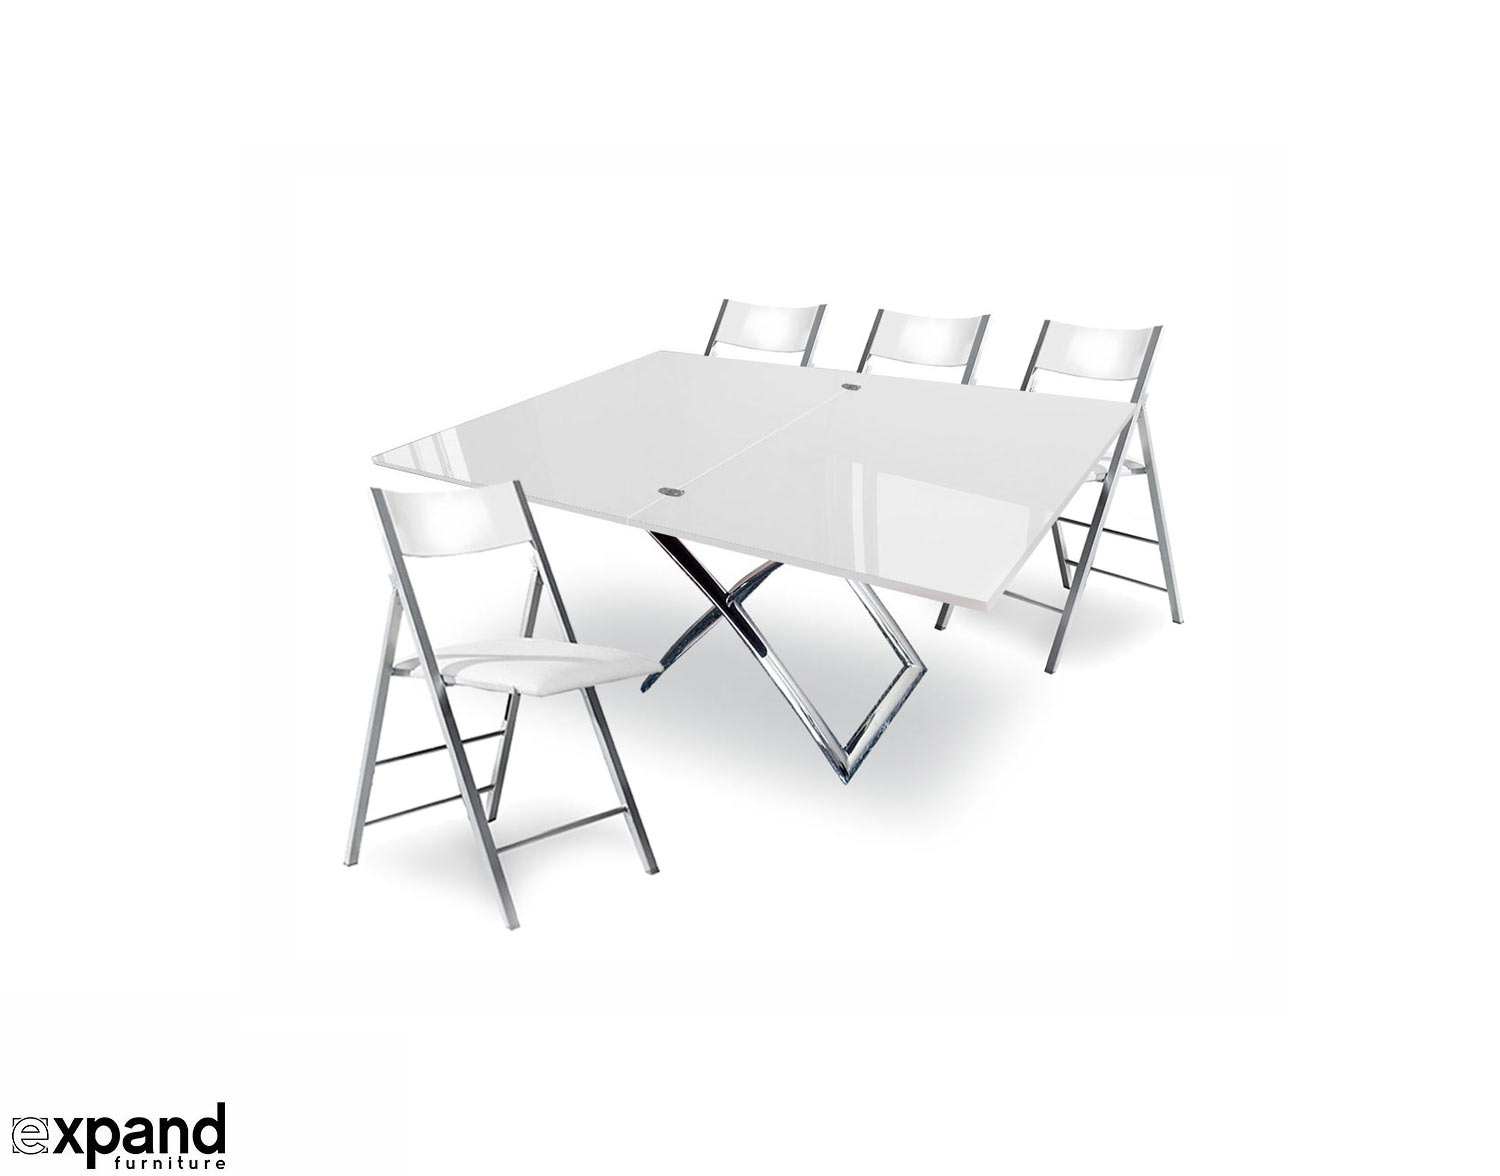 space saving sofa bed stressless assembly expand modern dining table and chairs | furniture ...